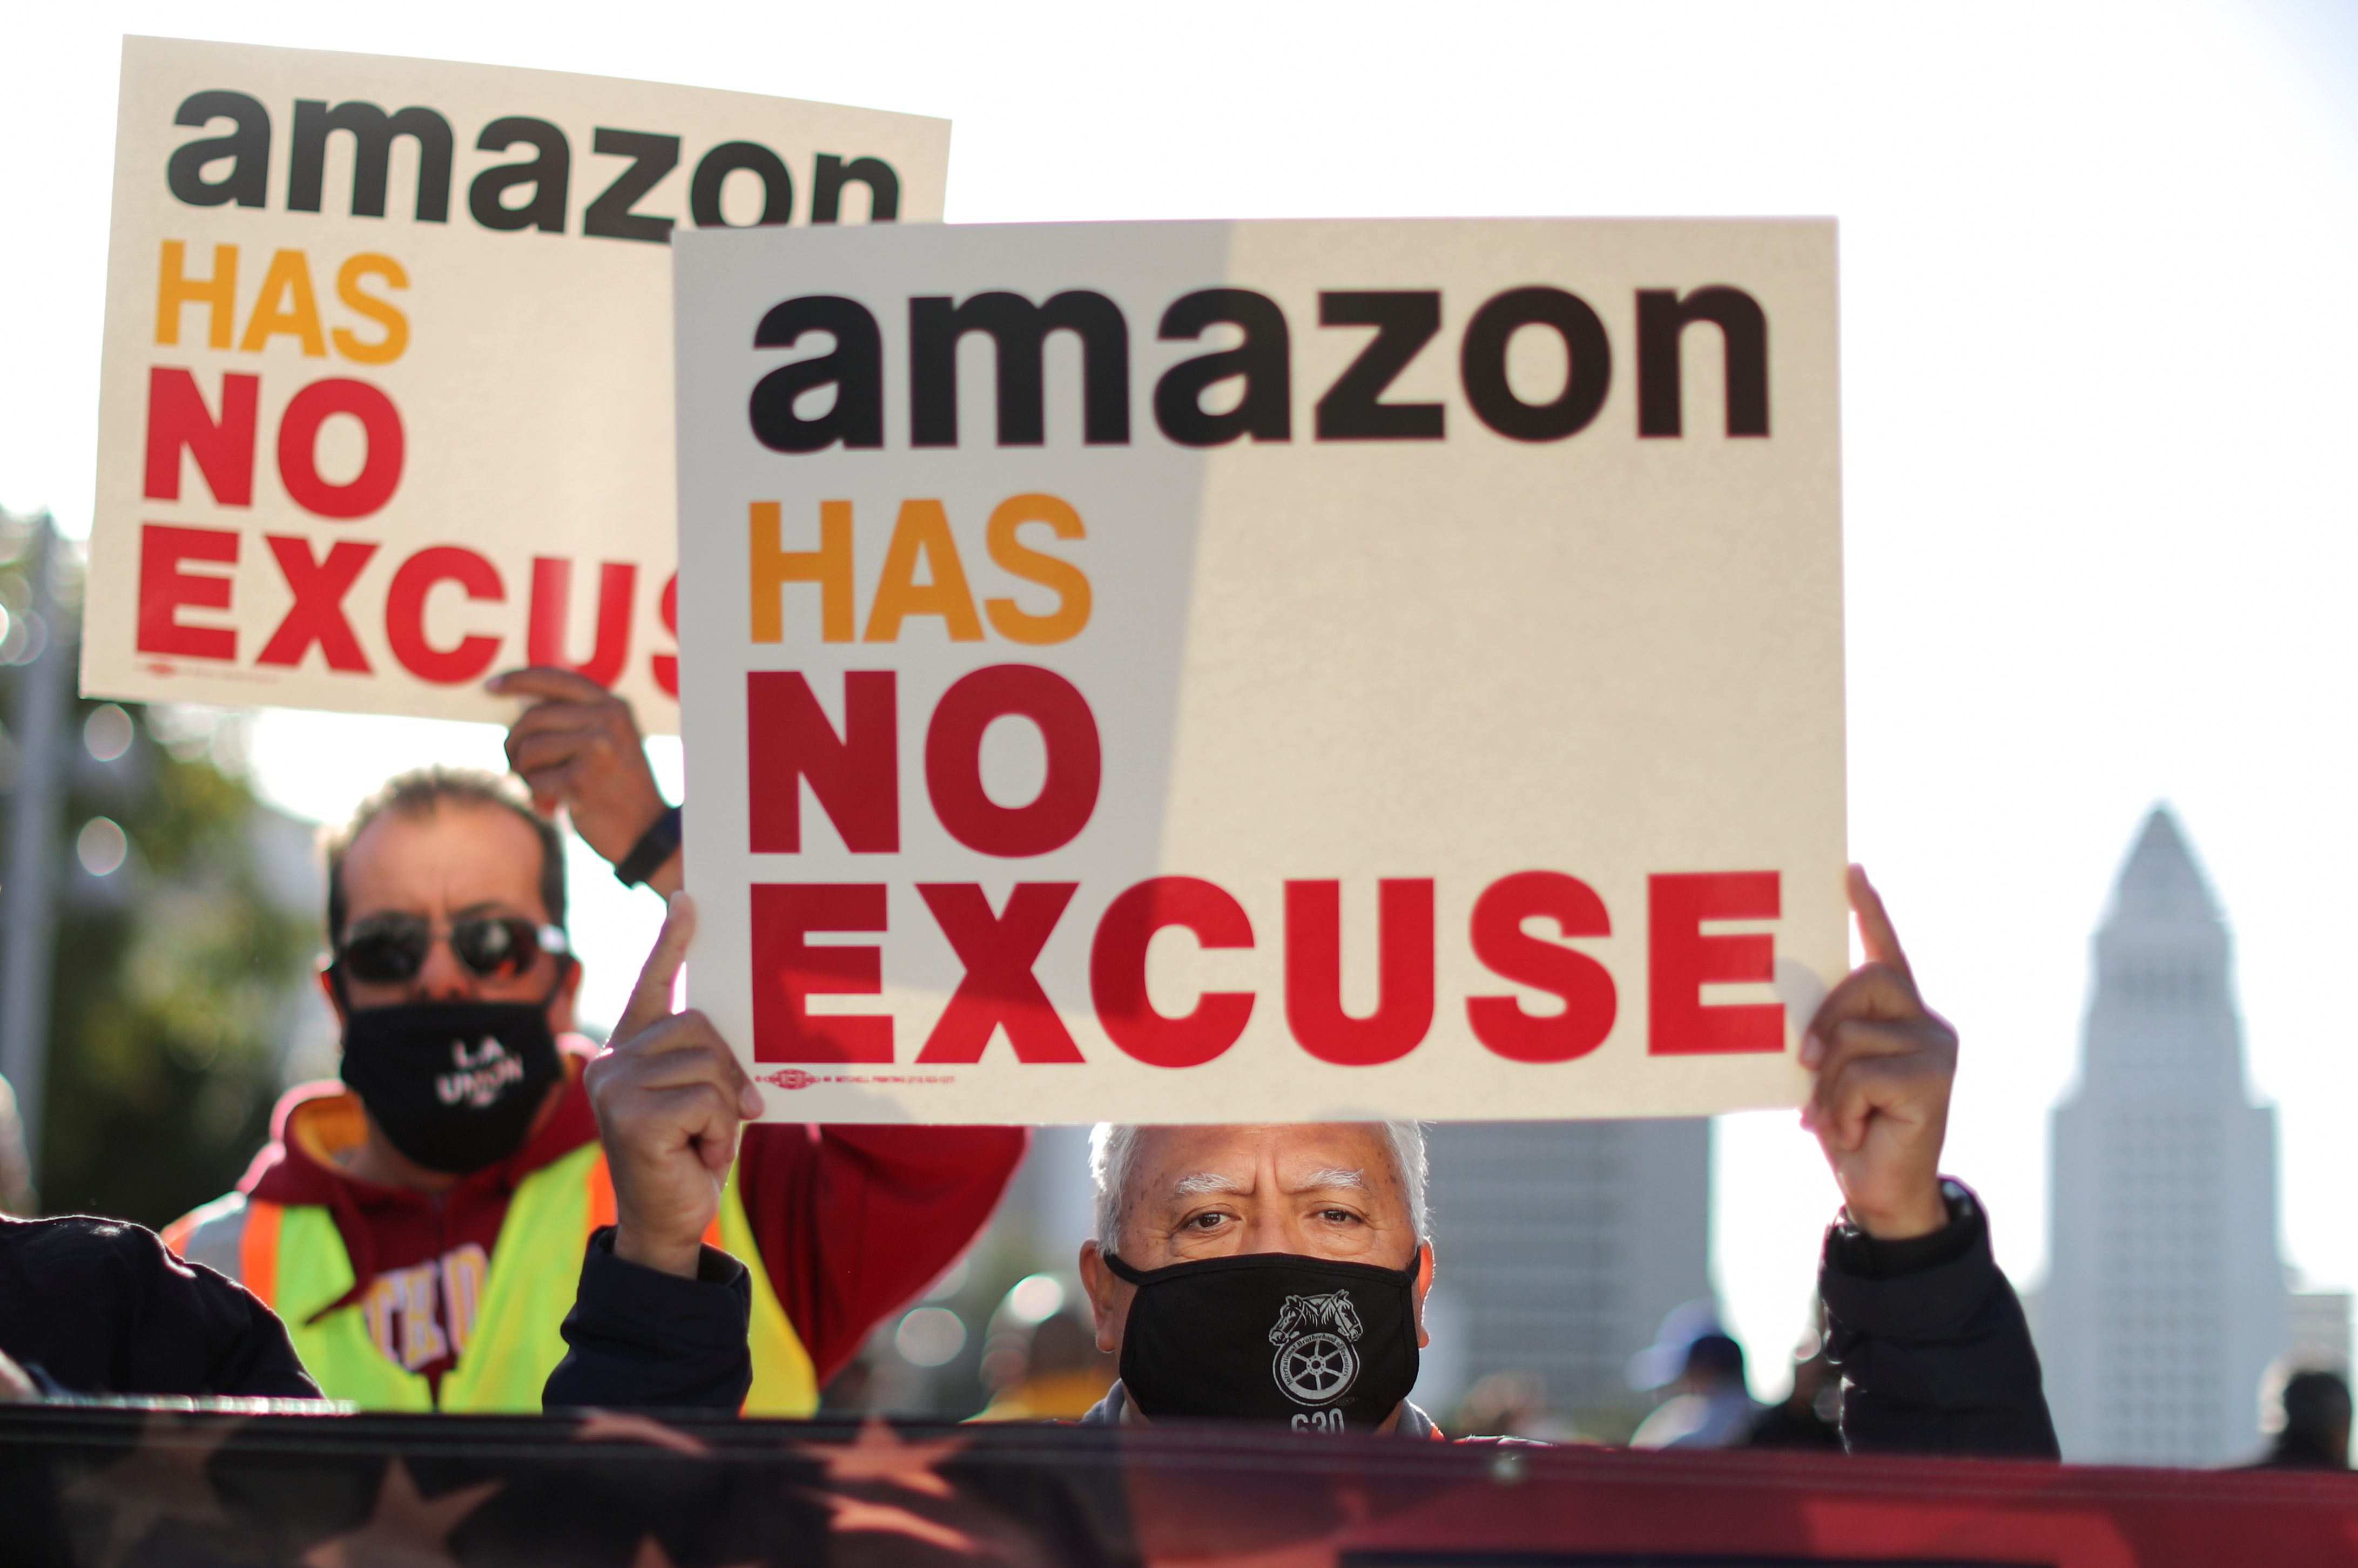 People protest in support of the unionizing efforts of the Alabama Amazon workers, in Los Angeles, California, U.S., March 22, 2021. REUTERS/Lucy Nicholson